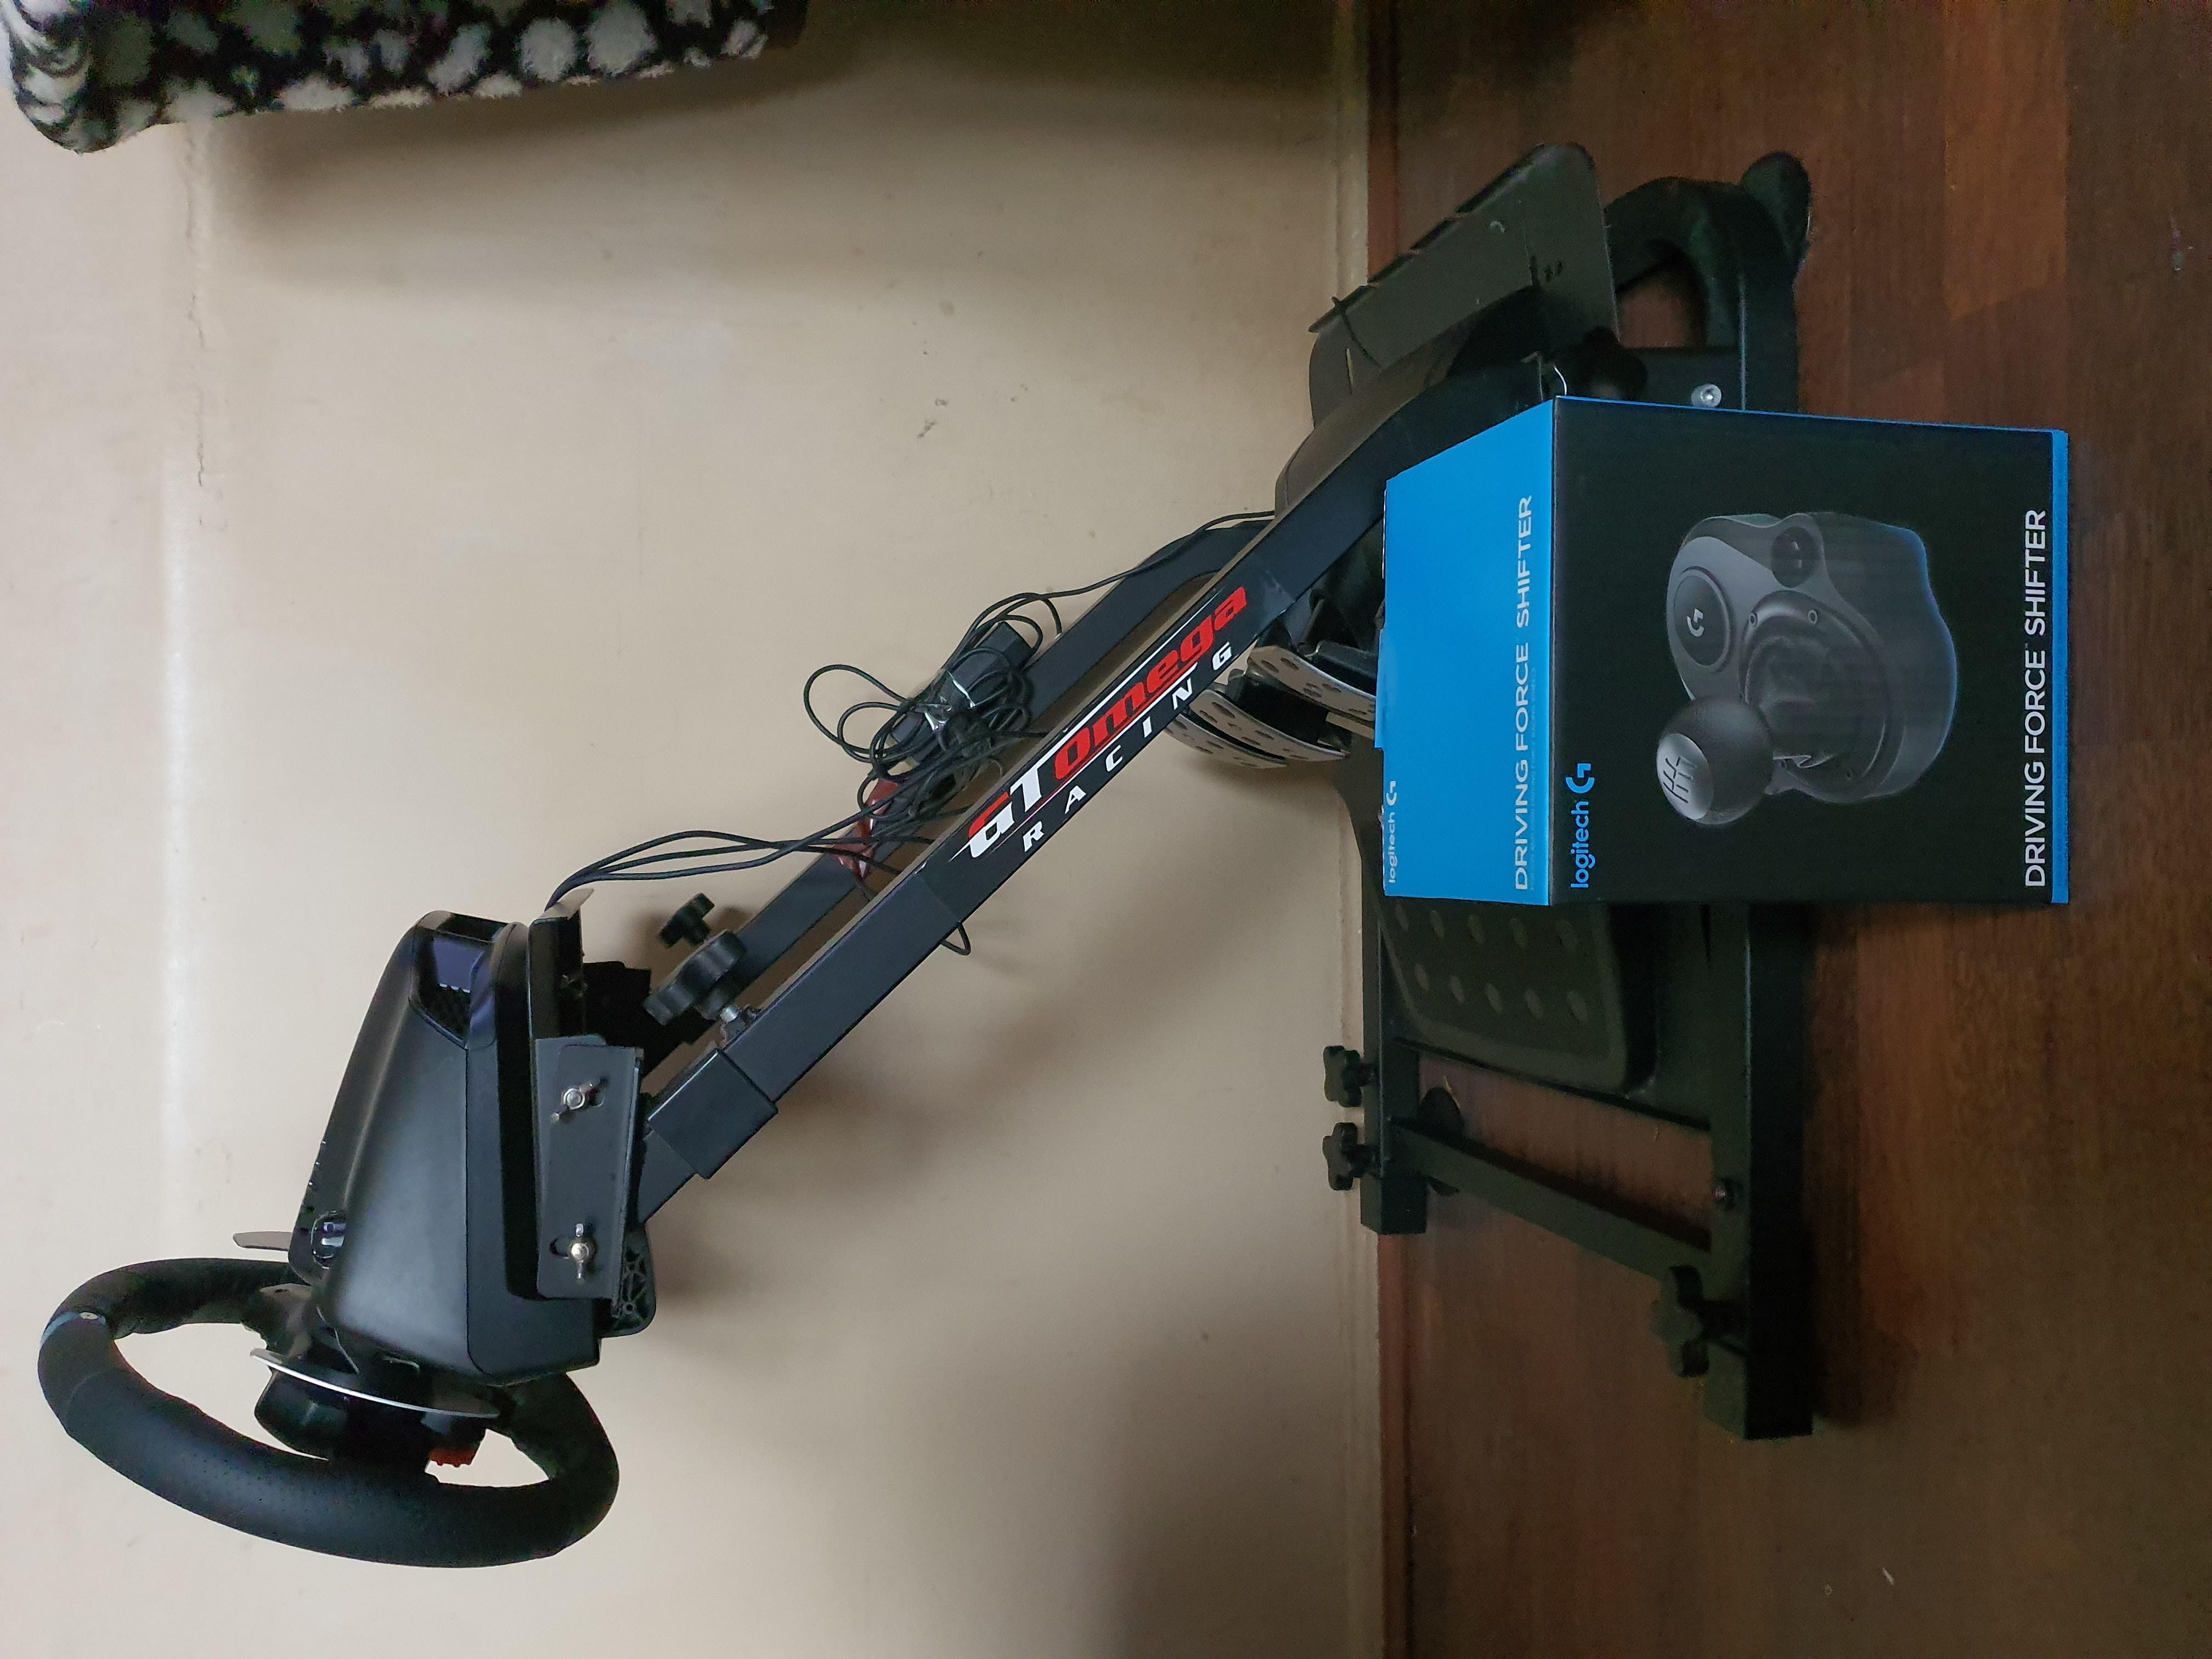 Logitech G29, pedals and shifter for sale